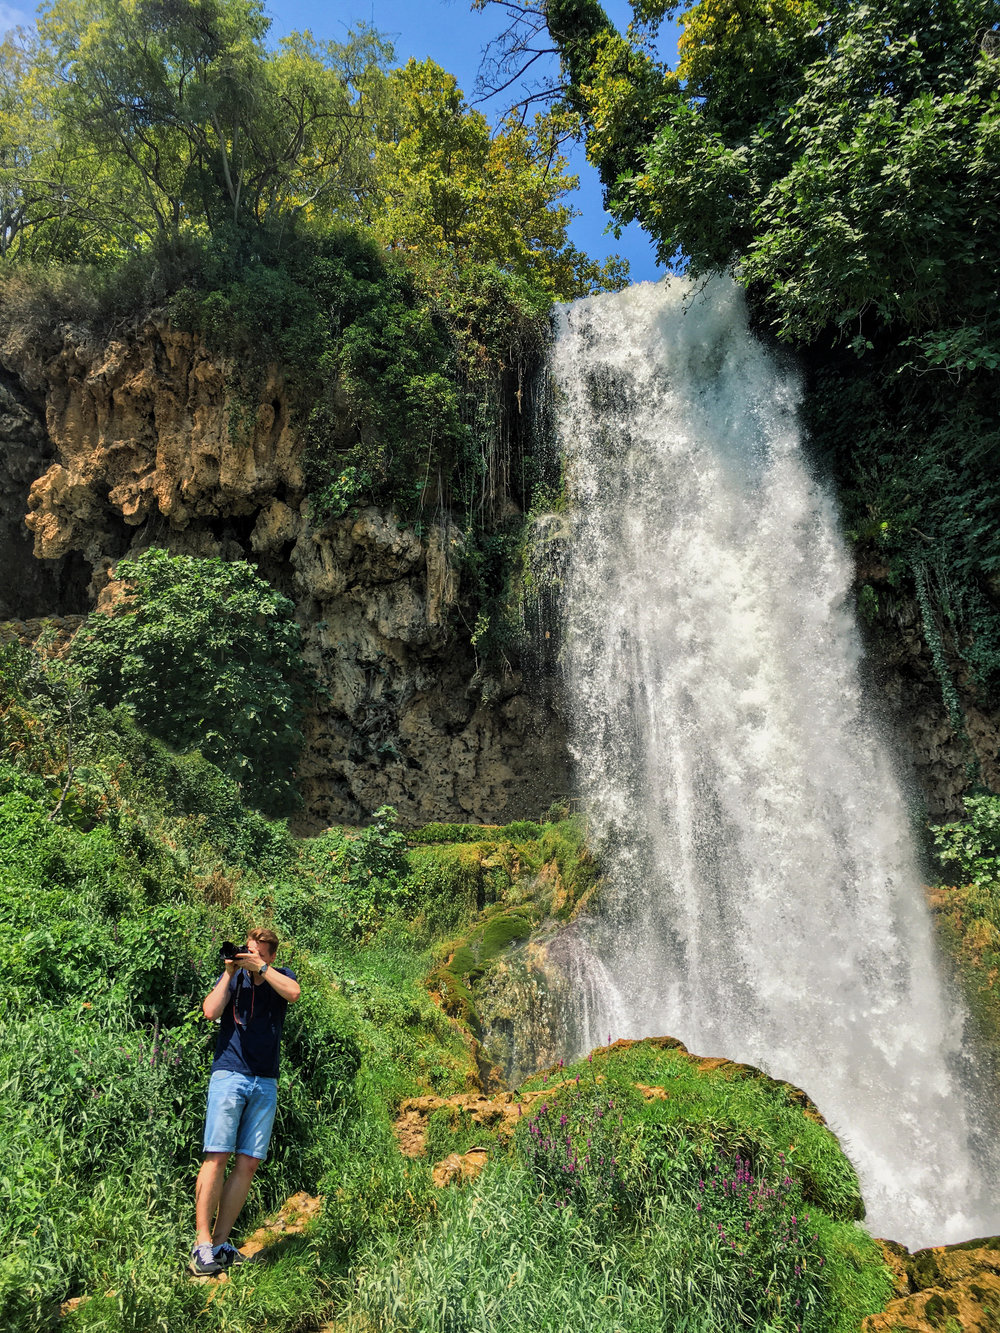 Me in front of a waterfall in Edessa